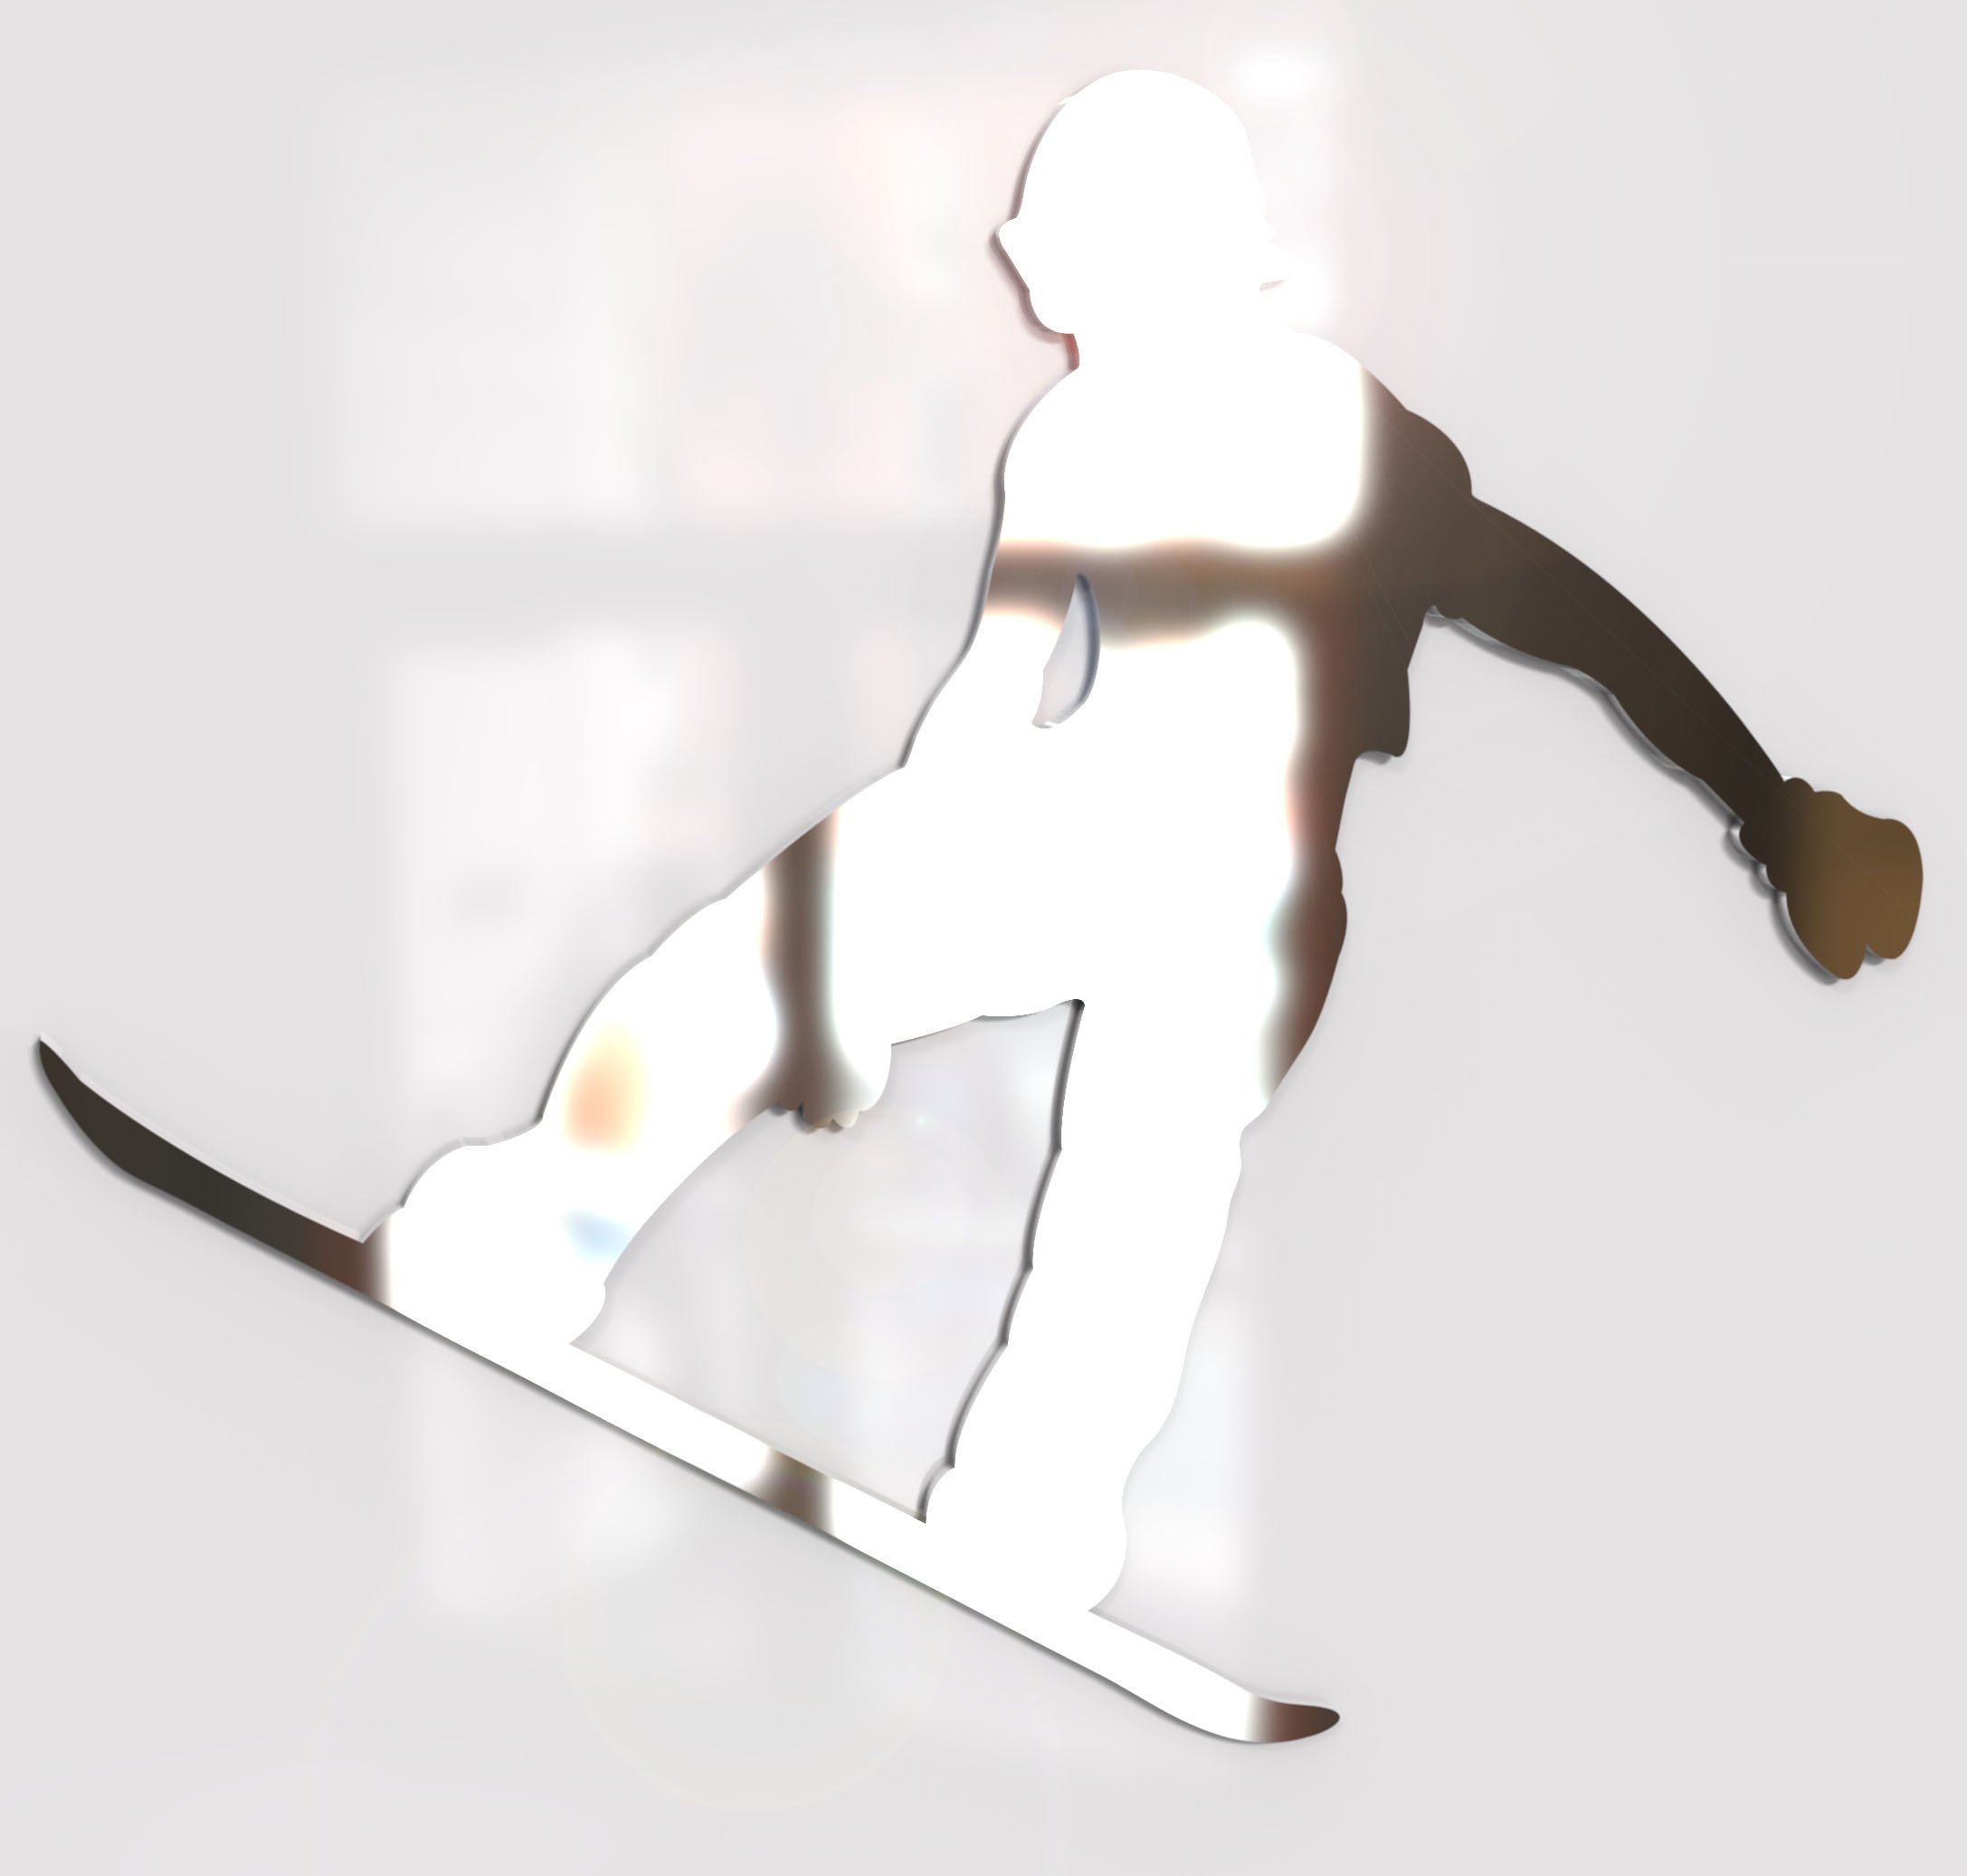 Snowboarder Snowboarding Mirror - Available in various sizes, including sets for crafting kits - Set of 10 (5cm each)